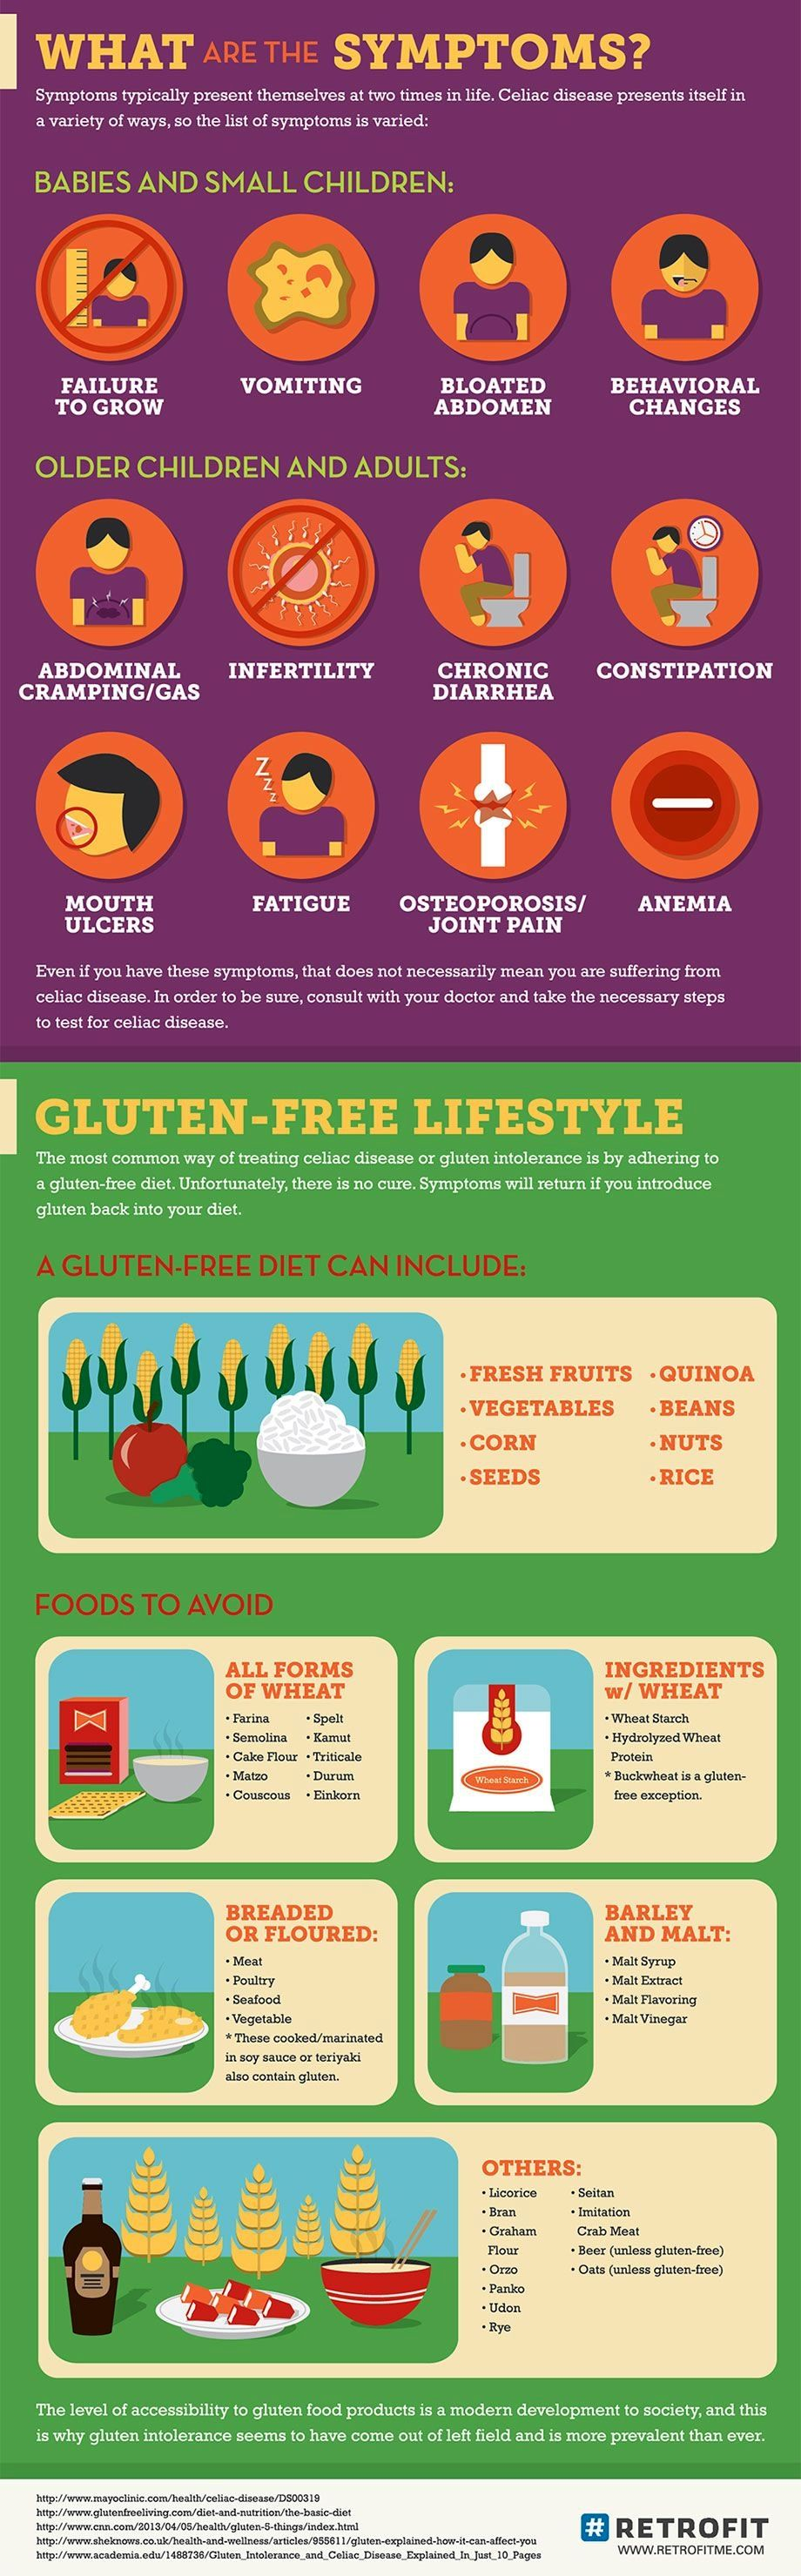 Pin by harry63rux on Health (With images) | Gluten free ...